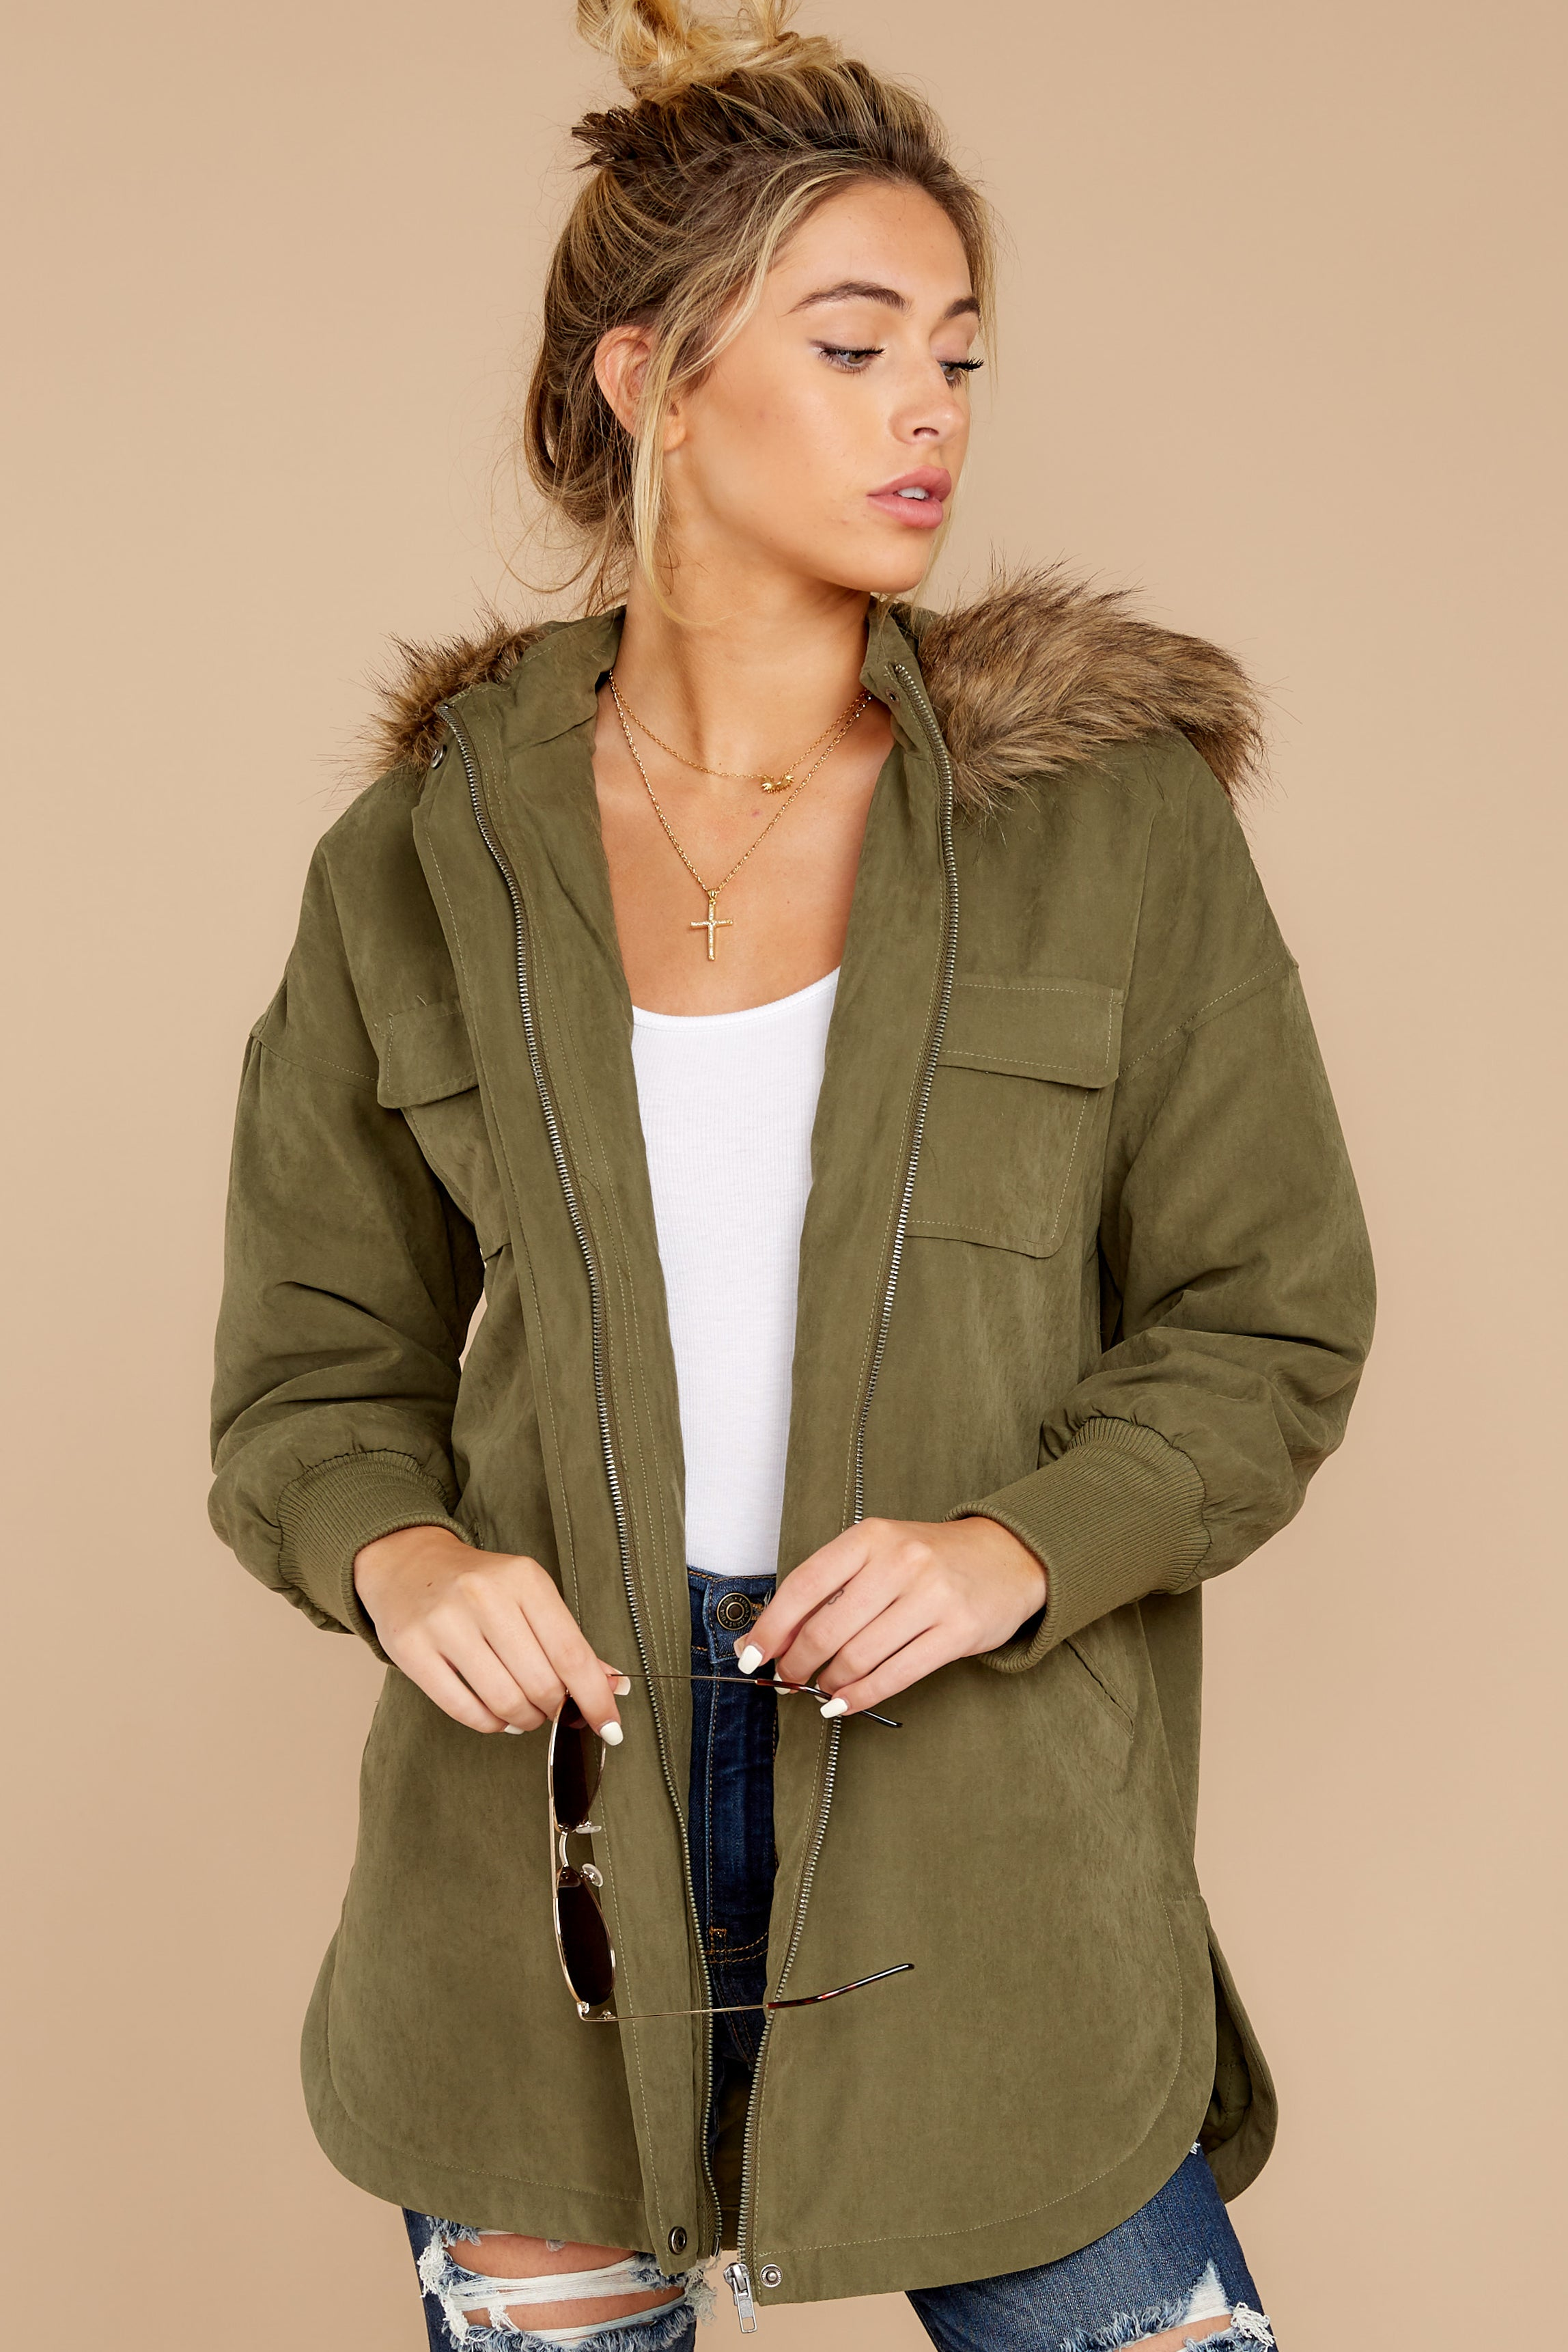 Colder Days Olive Green Coat